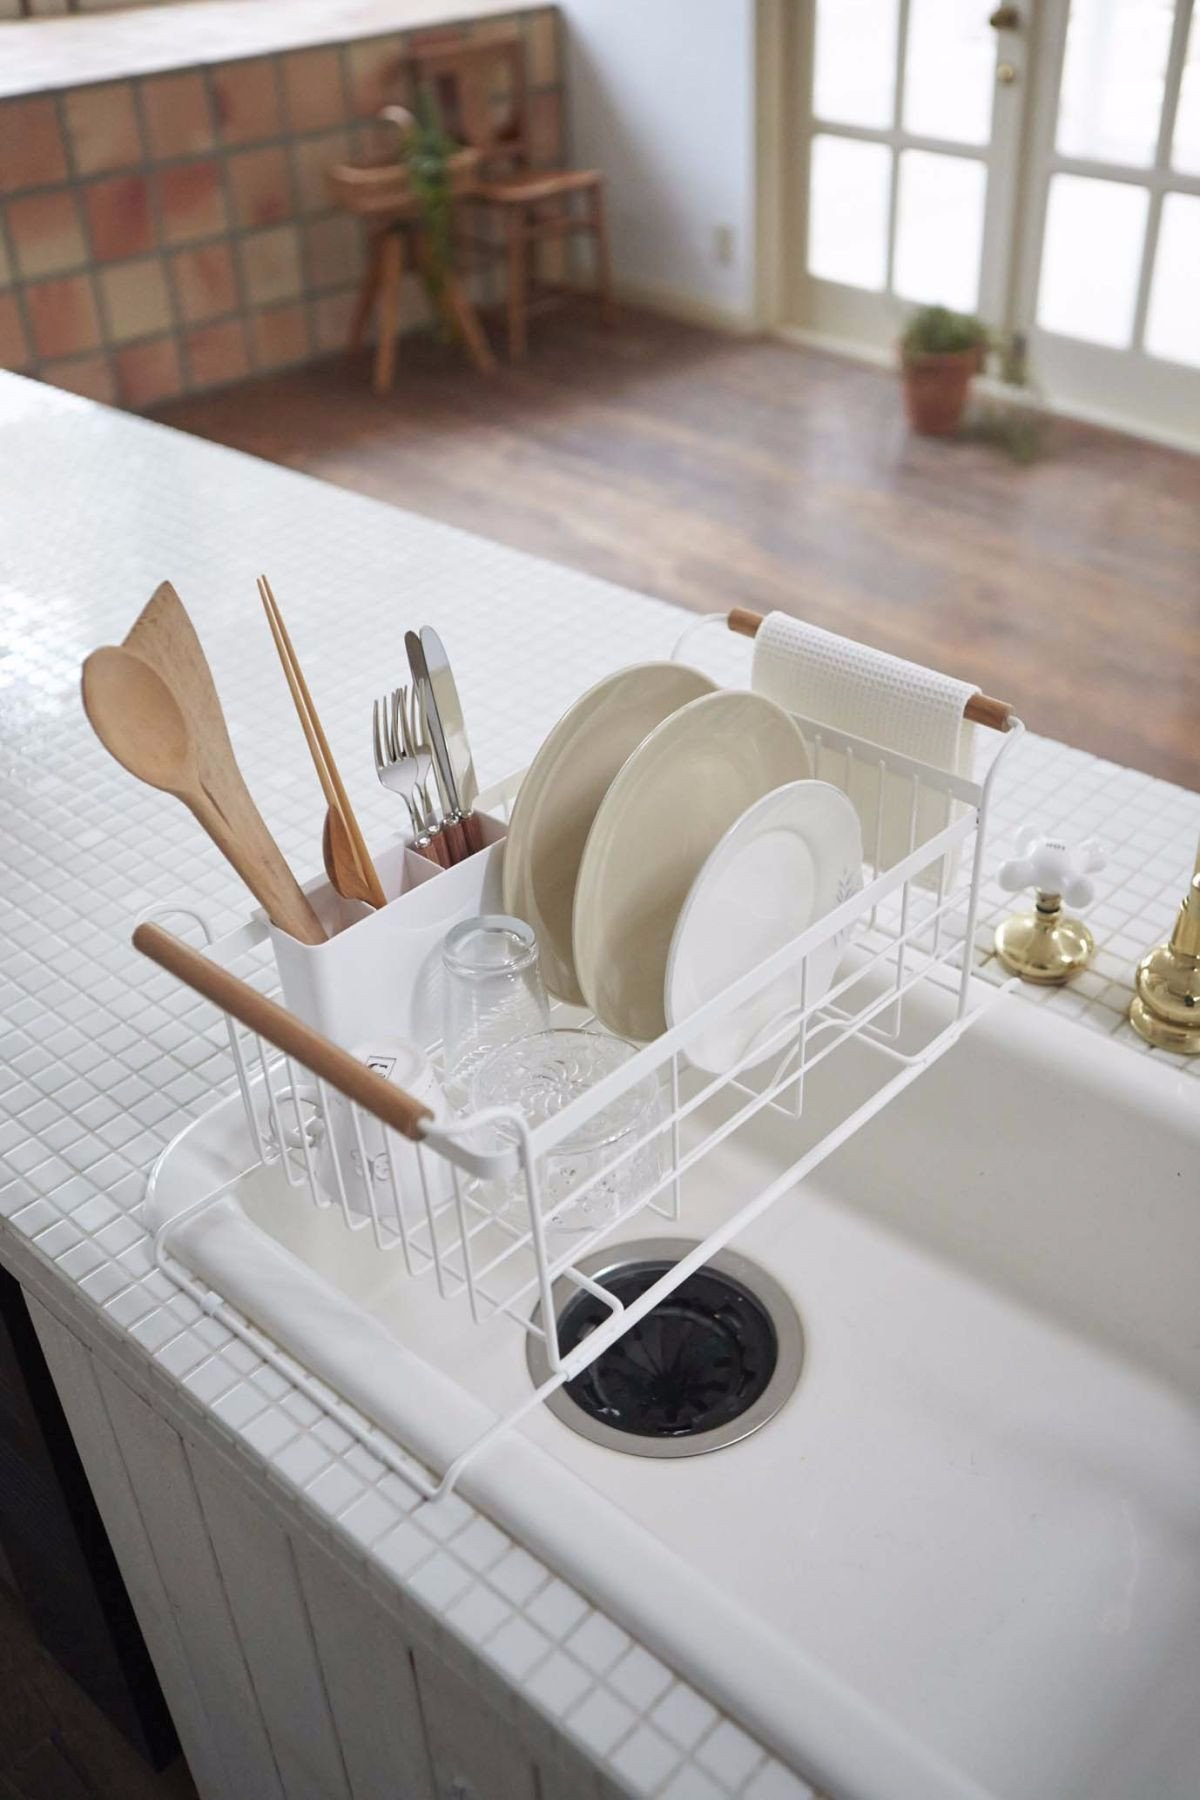 Utilize Over-the-Sink Space